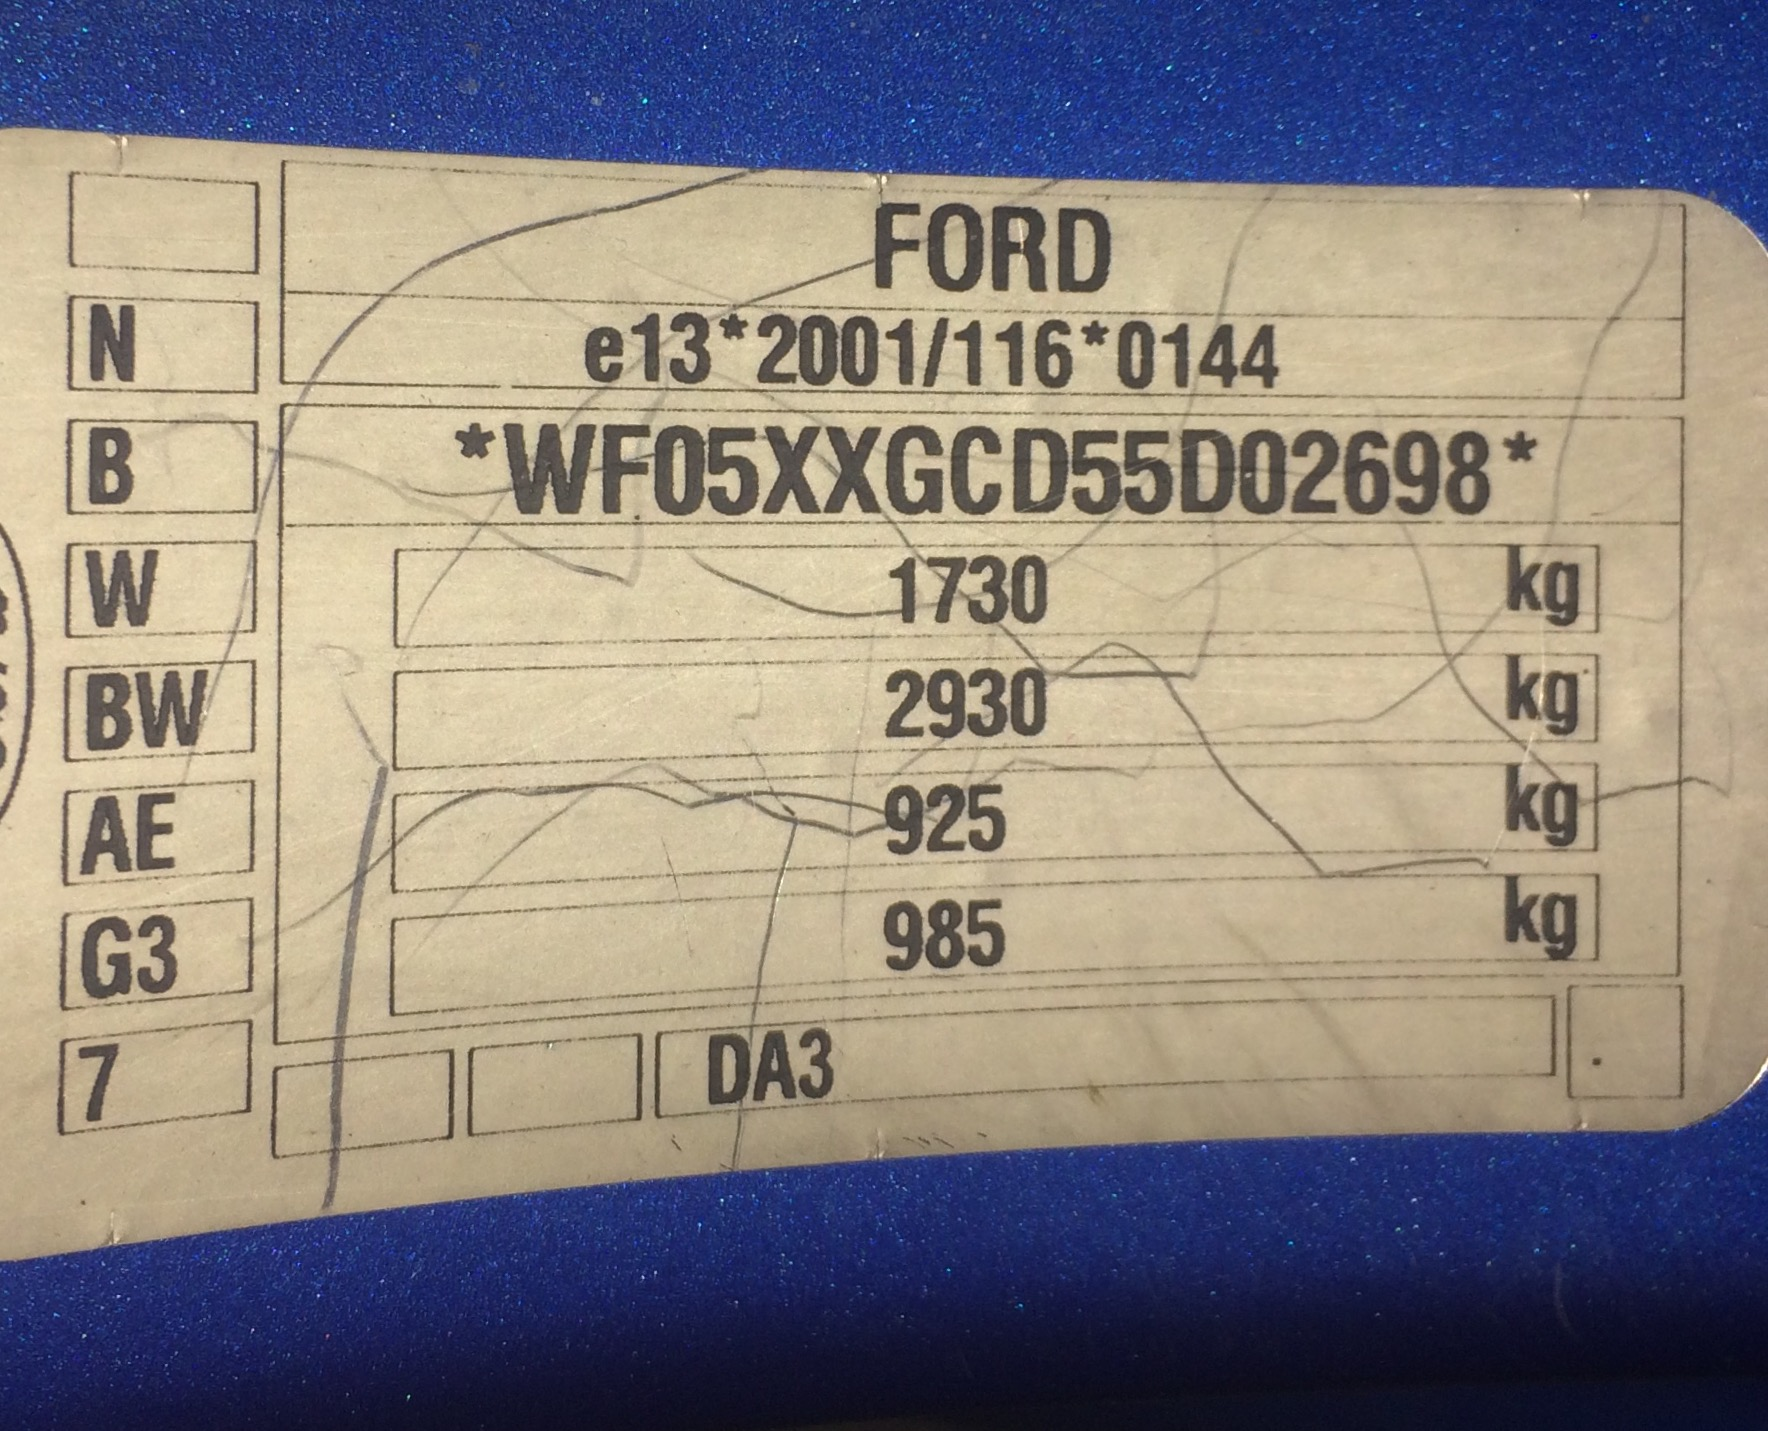 Colour Code Help Ford Focus Club Ford Owners Club Ford Forums